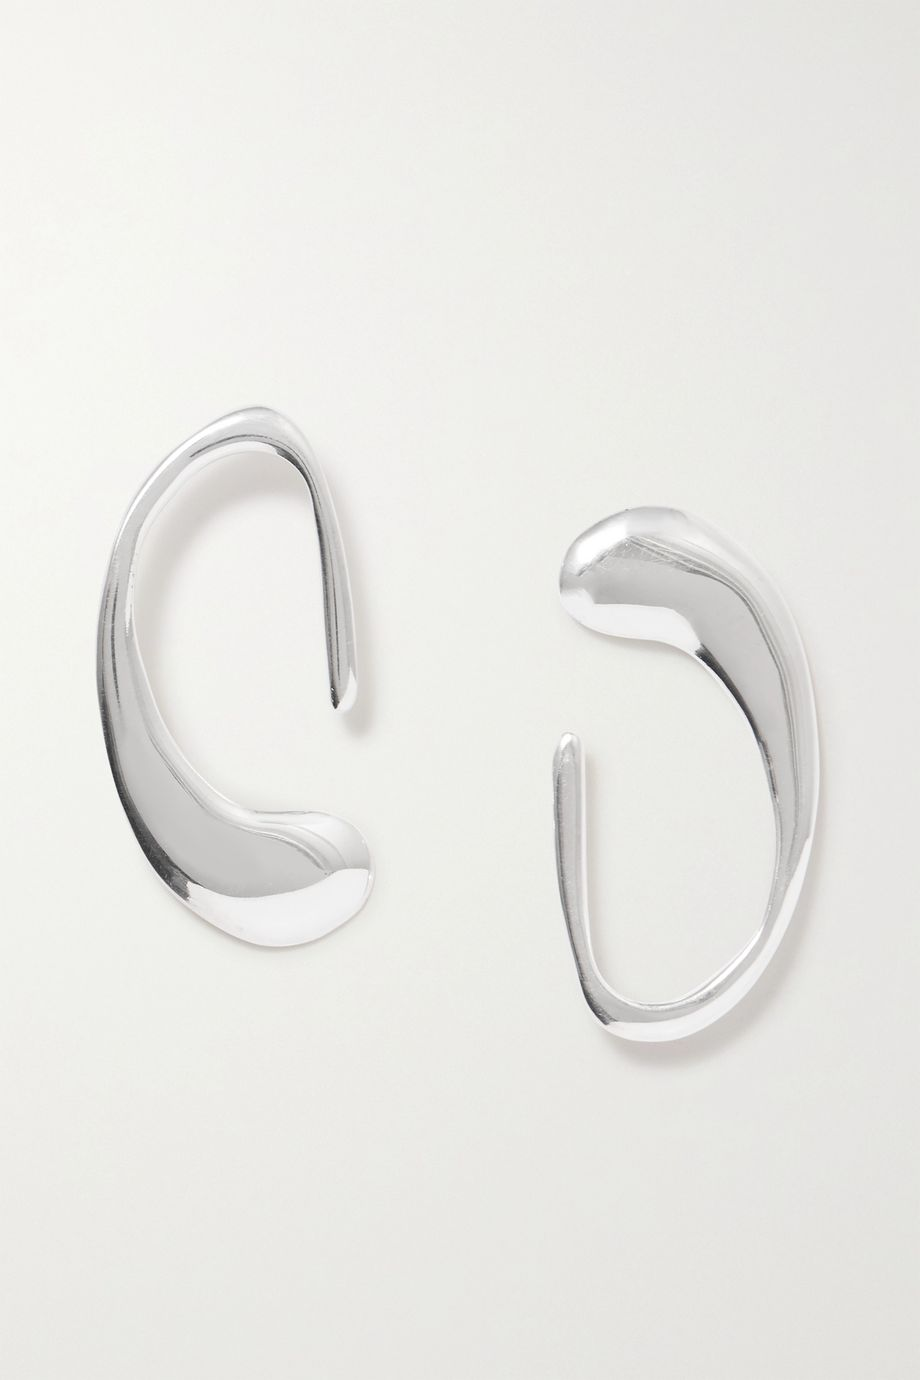 Nathalie Schreckenberg Caju silver earrings